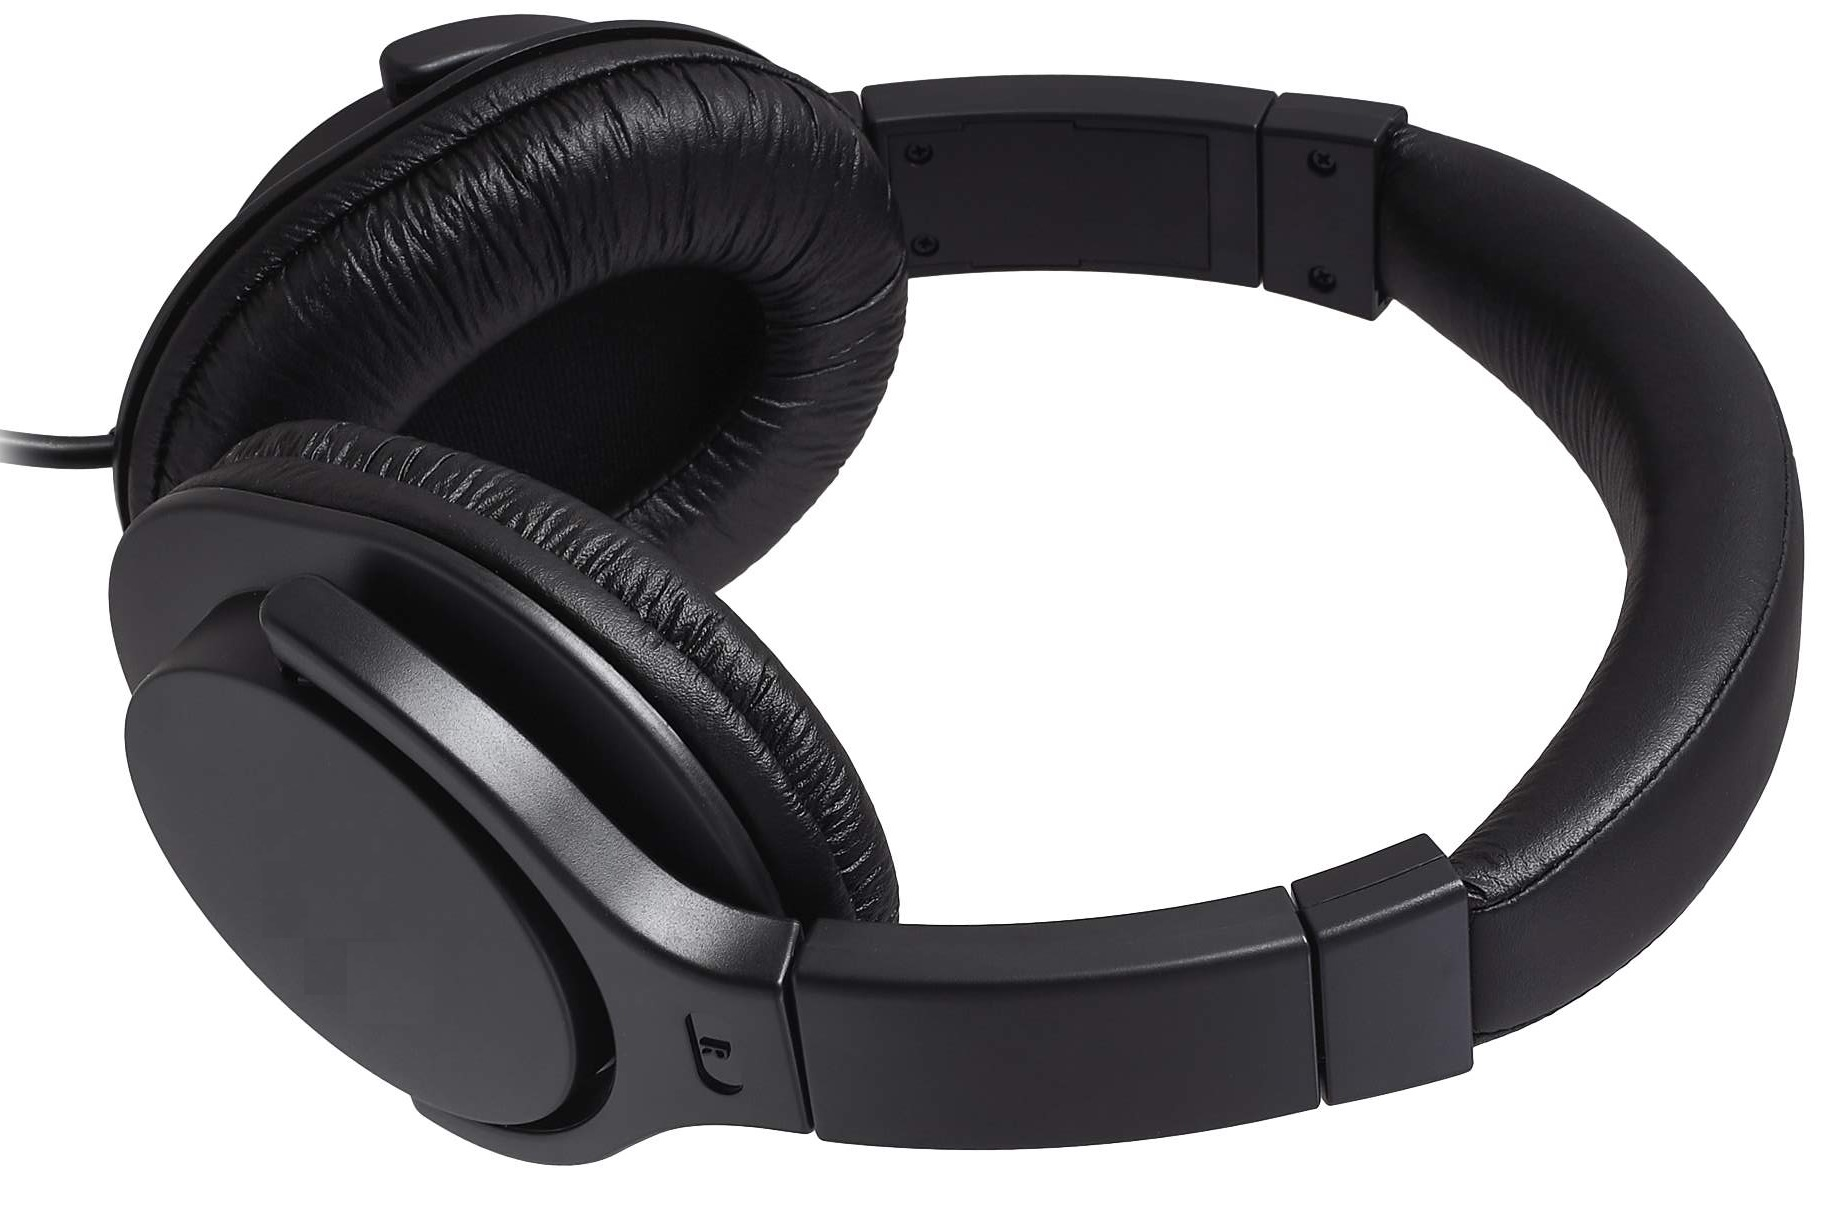 A little roundup of our favorite studio headphones for under fifty dollars